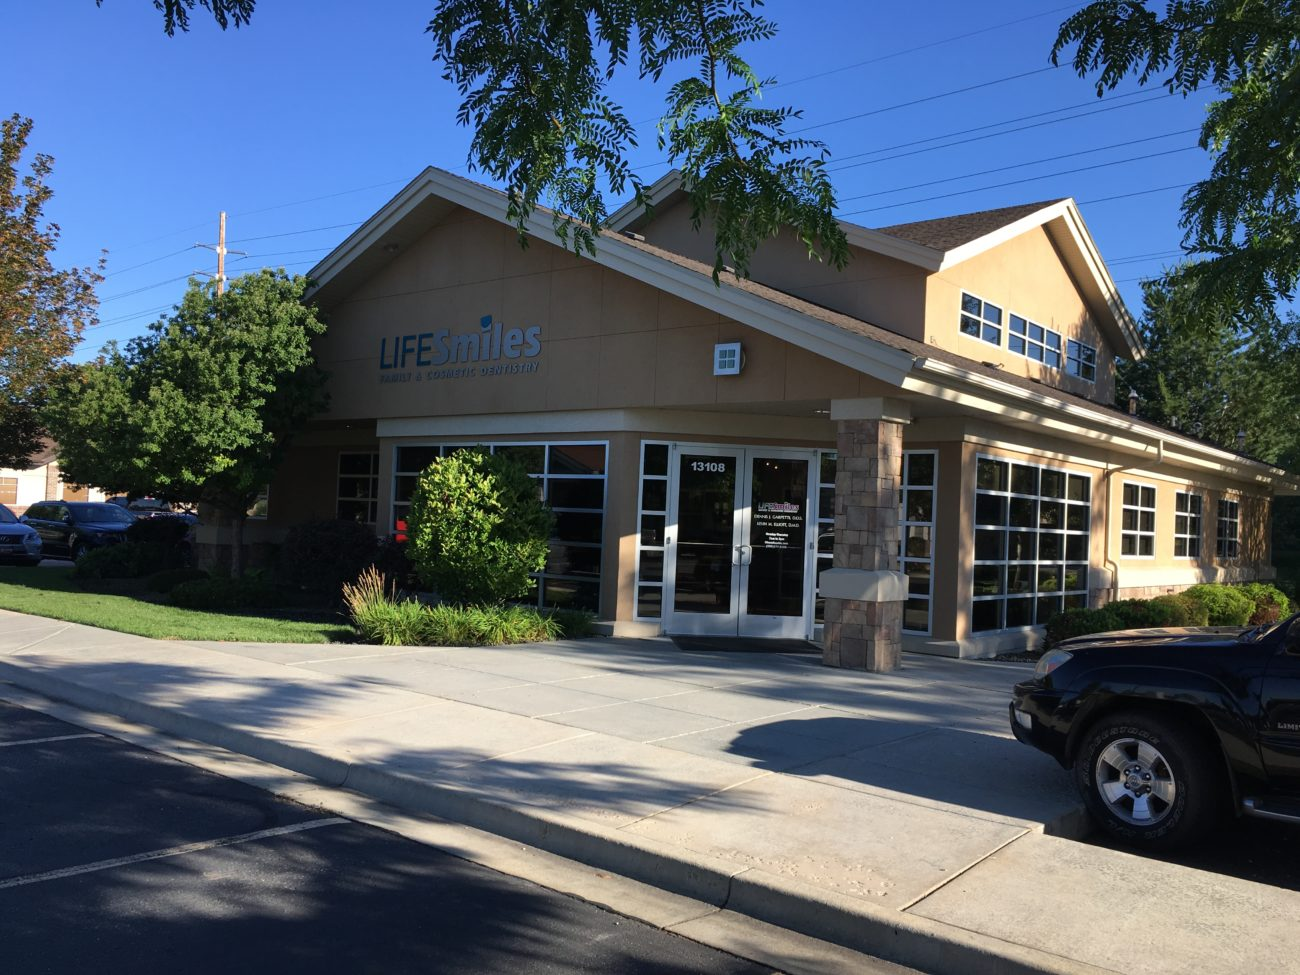 LIFESmiles Family and Cosmetic Dentistry | 13108 W Persimmon Ln, Boise, ID, 83713 | +1 (208) 377-2160